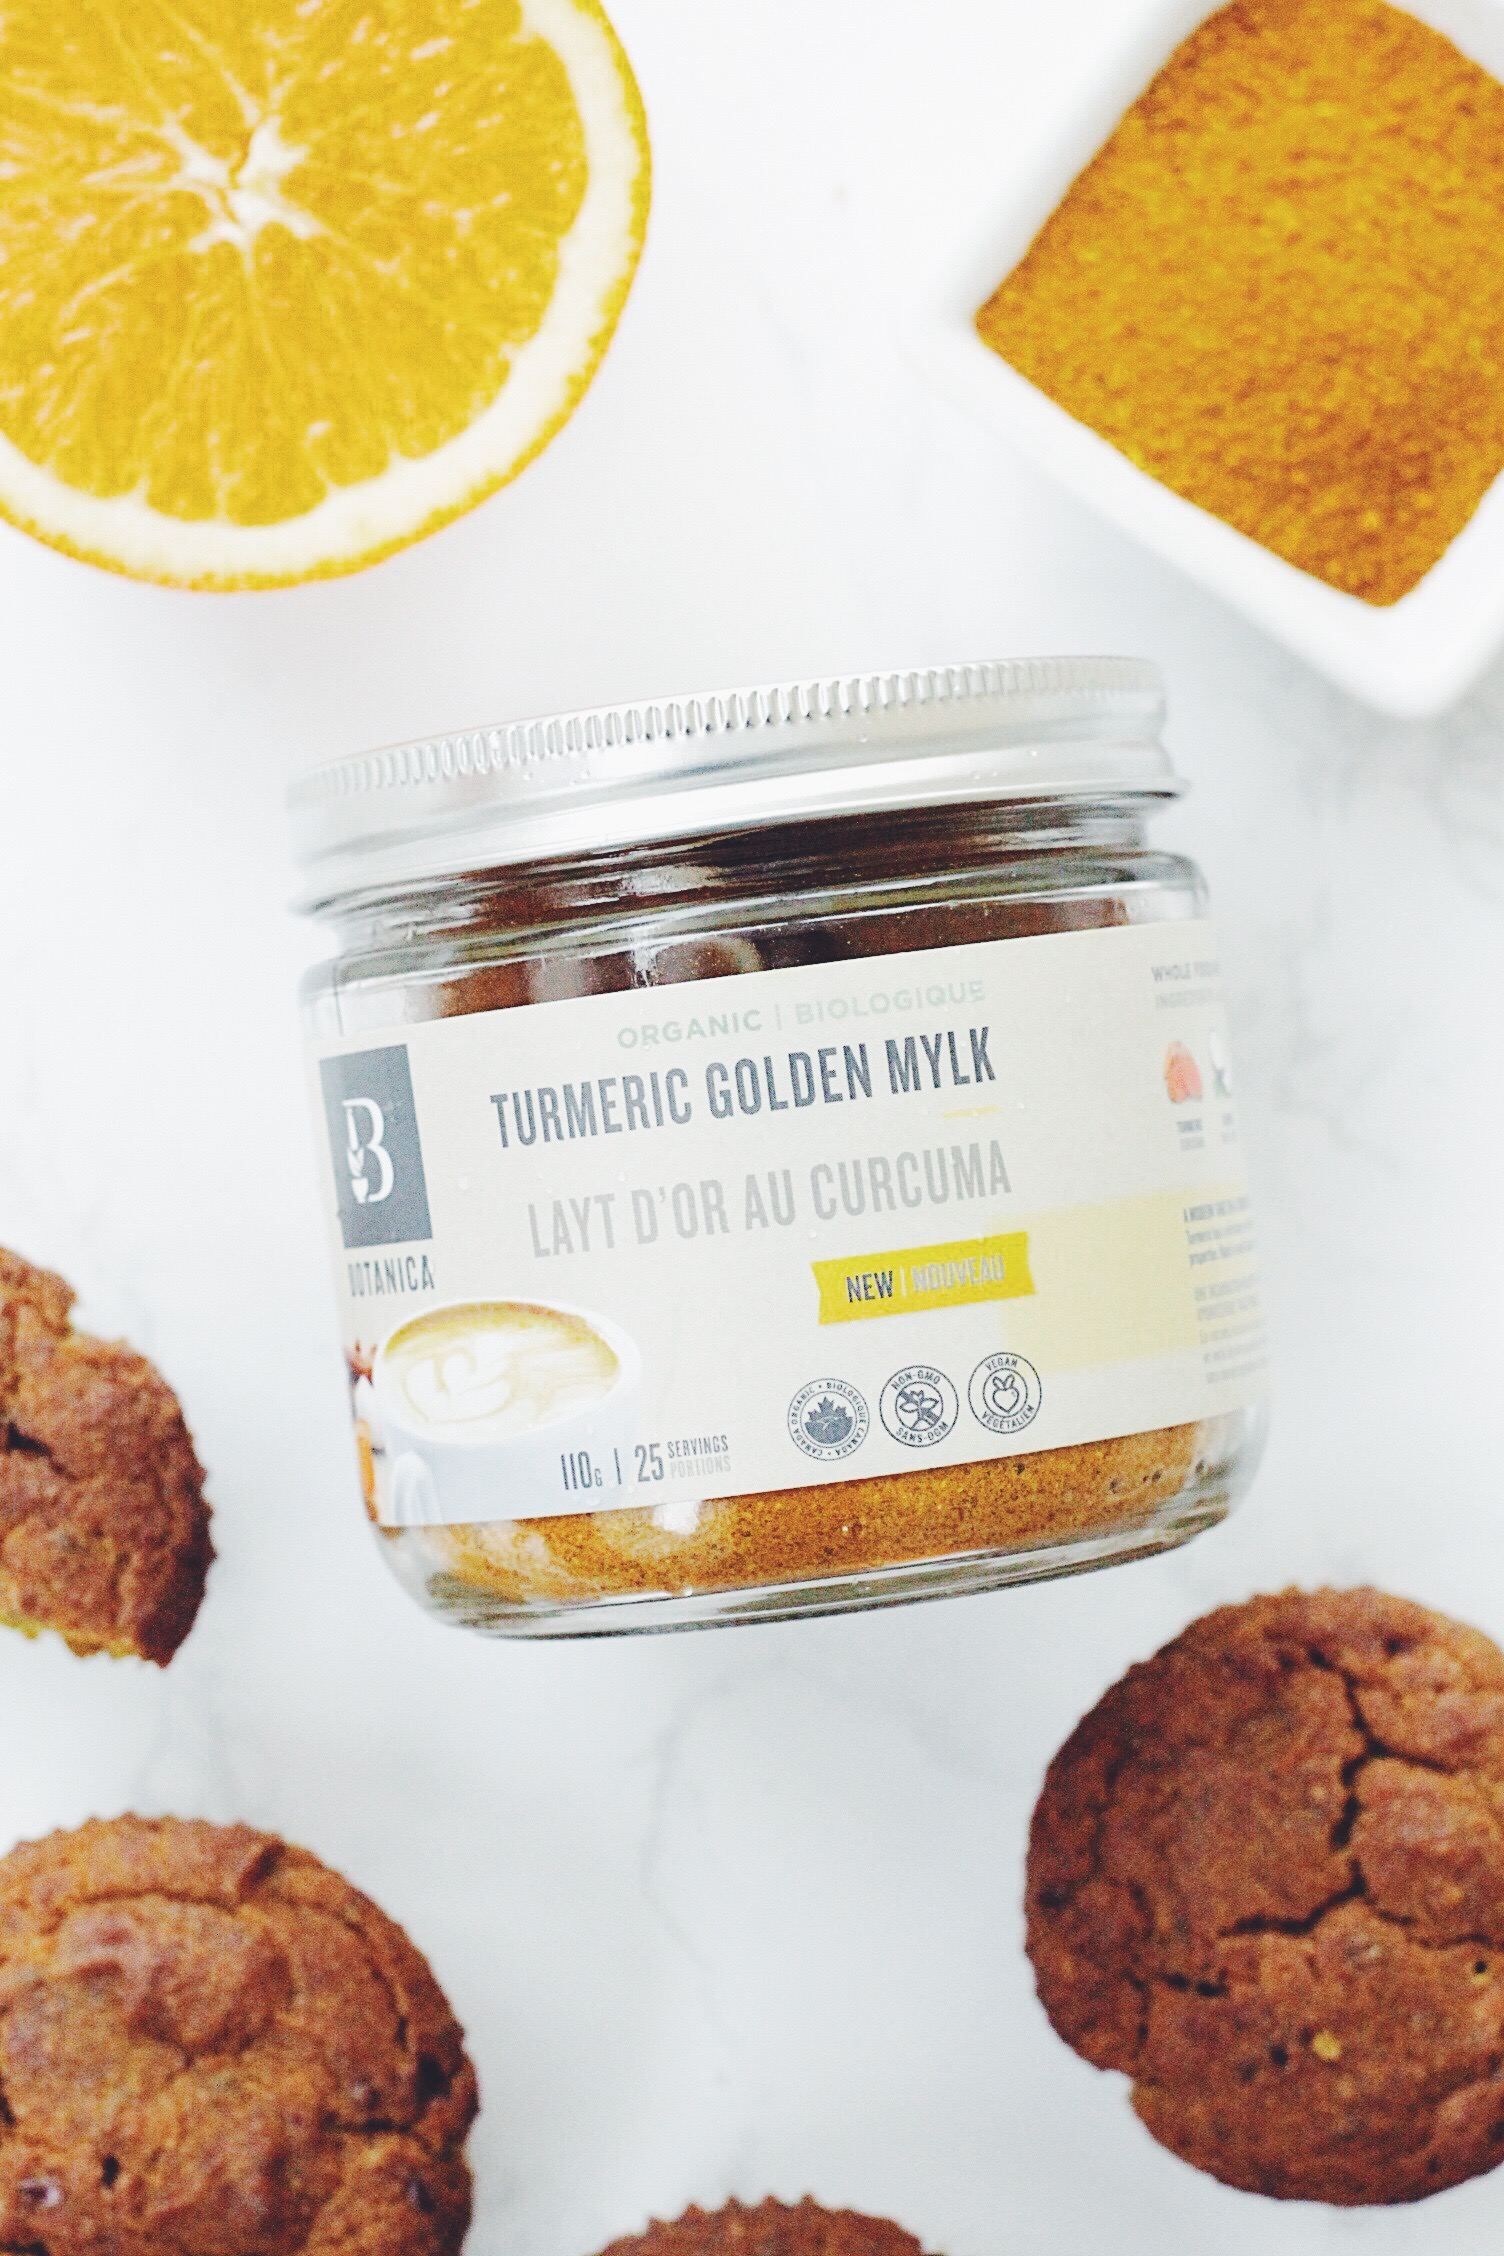 Orange Spice & Turmeric Muffins (Vegan + GF)